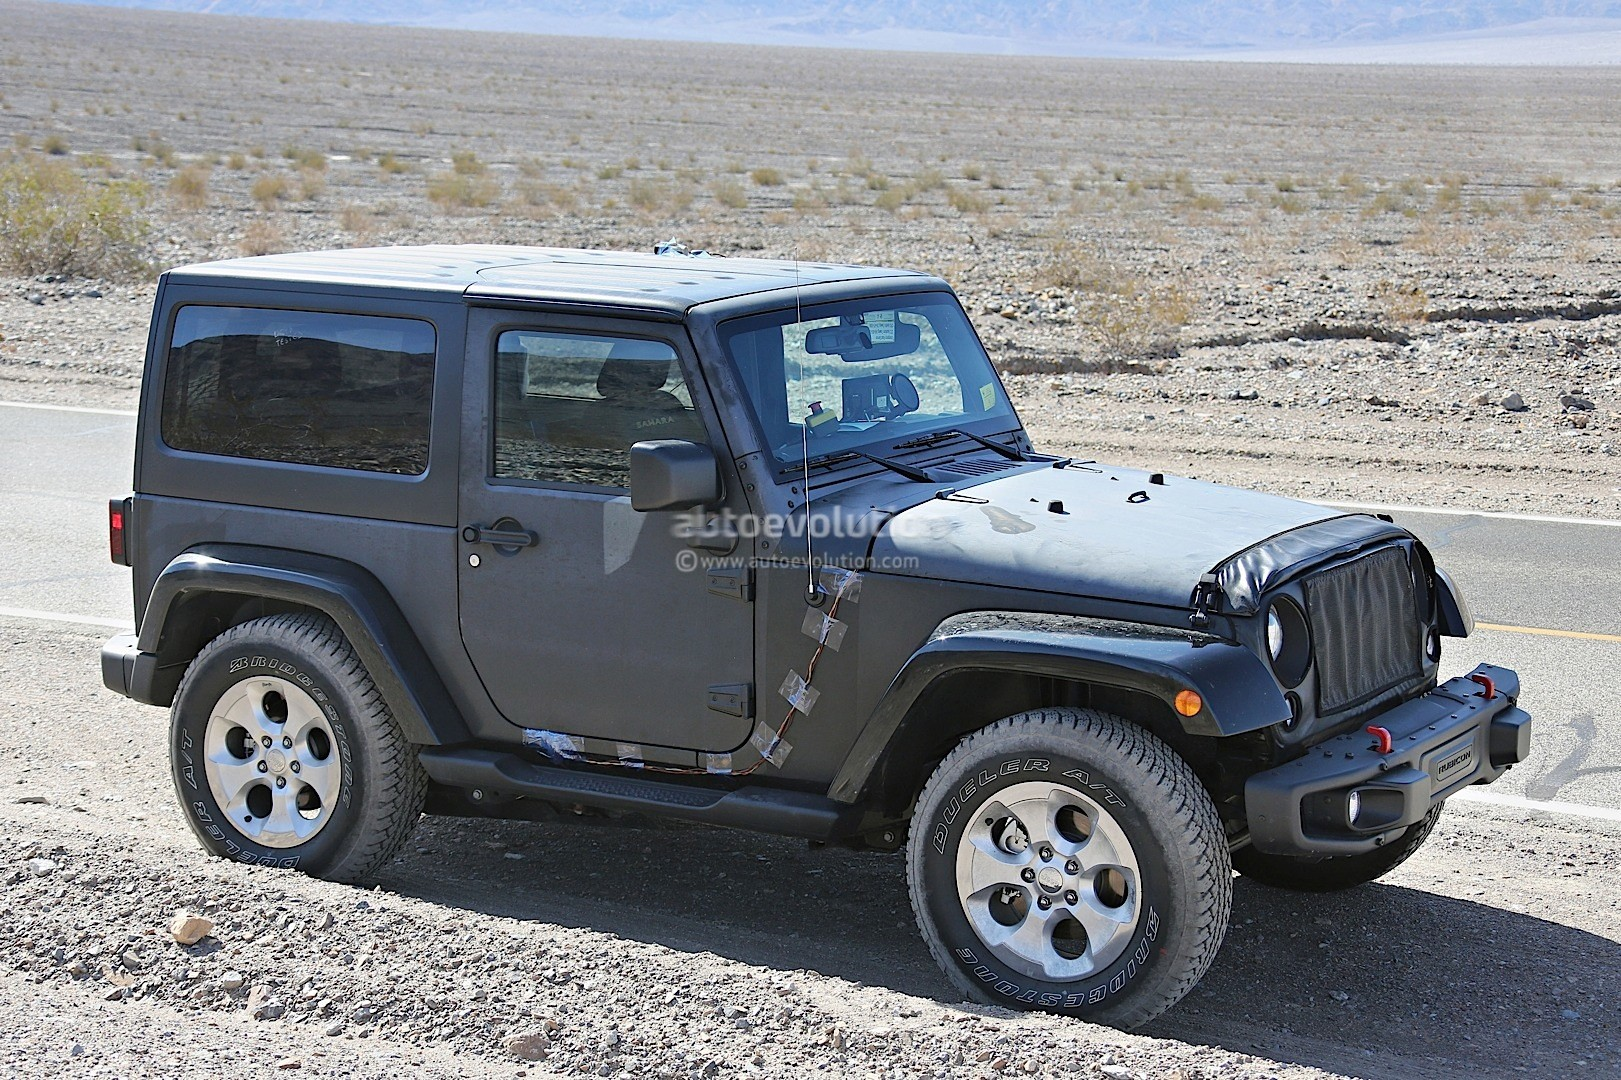 fca's mild-hybrid plans for jeep and ram brands could feature 48v